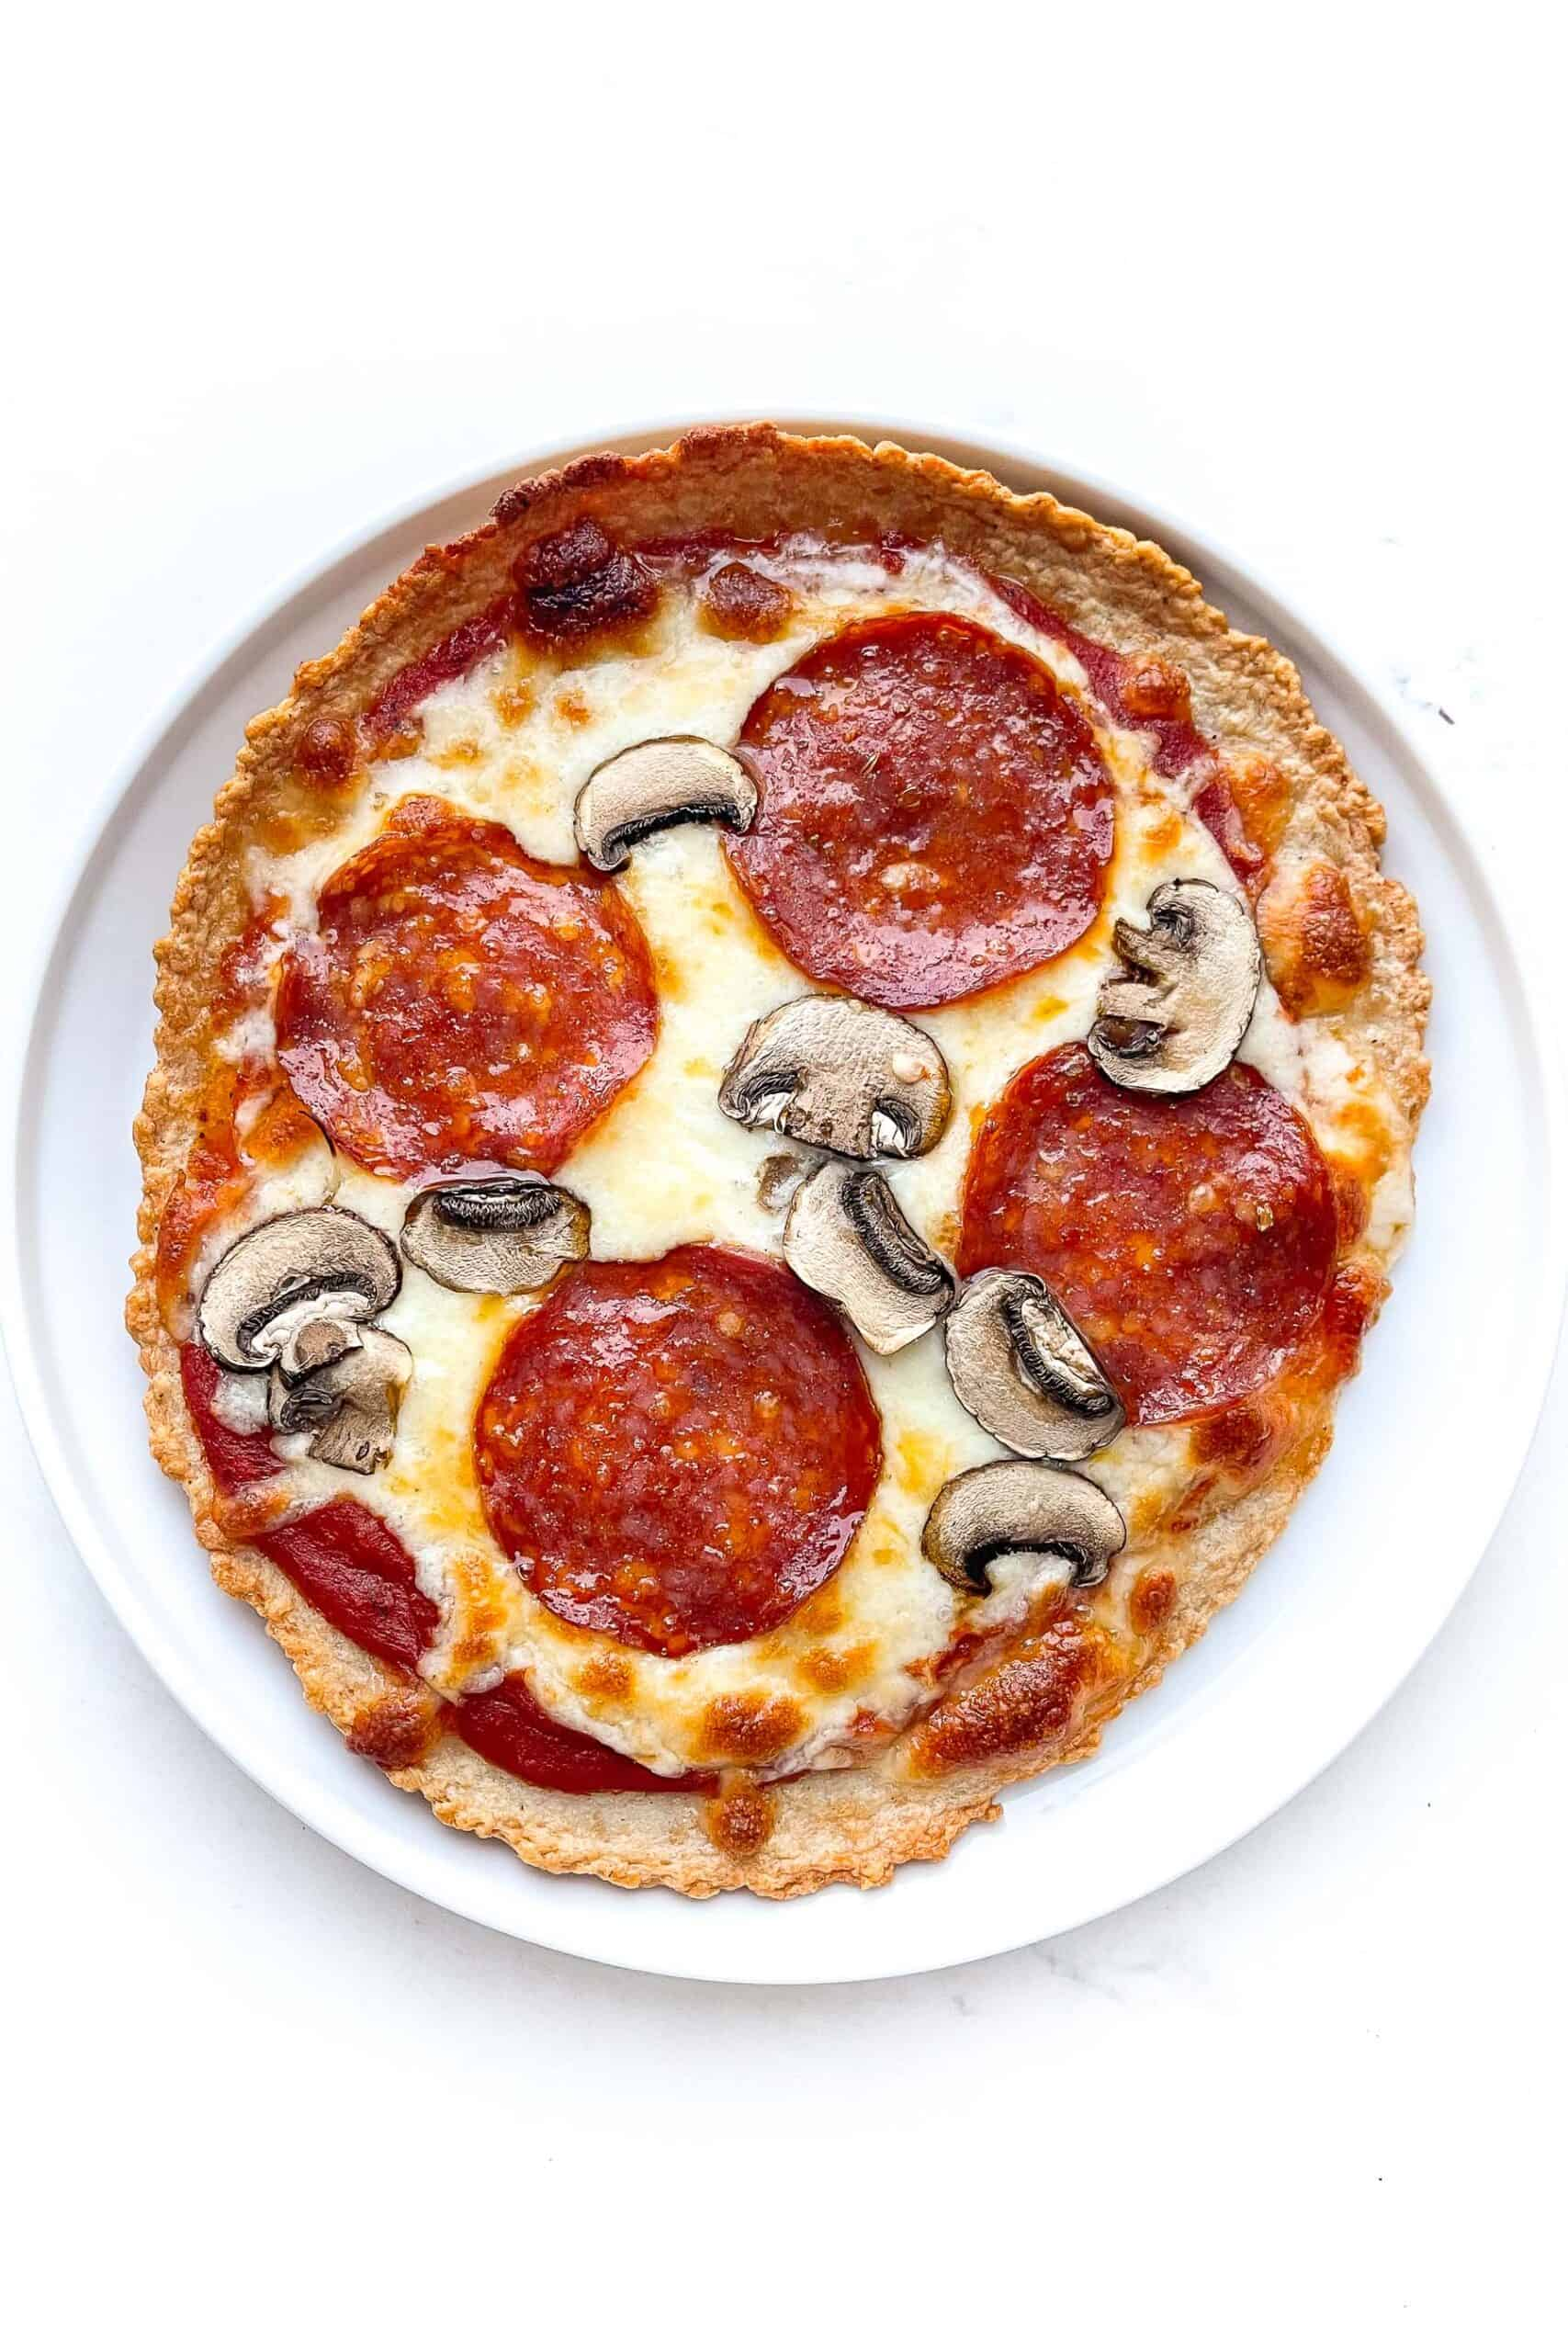 zero carb pepperoni and mushroom pizza on a white plate and background